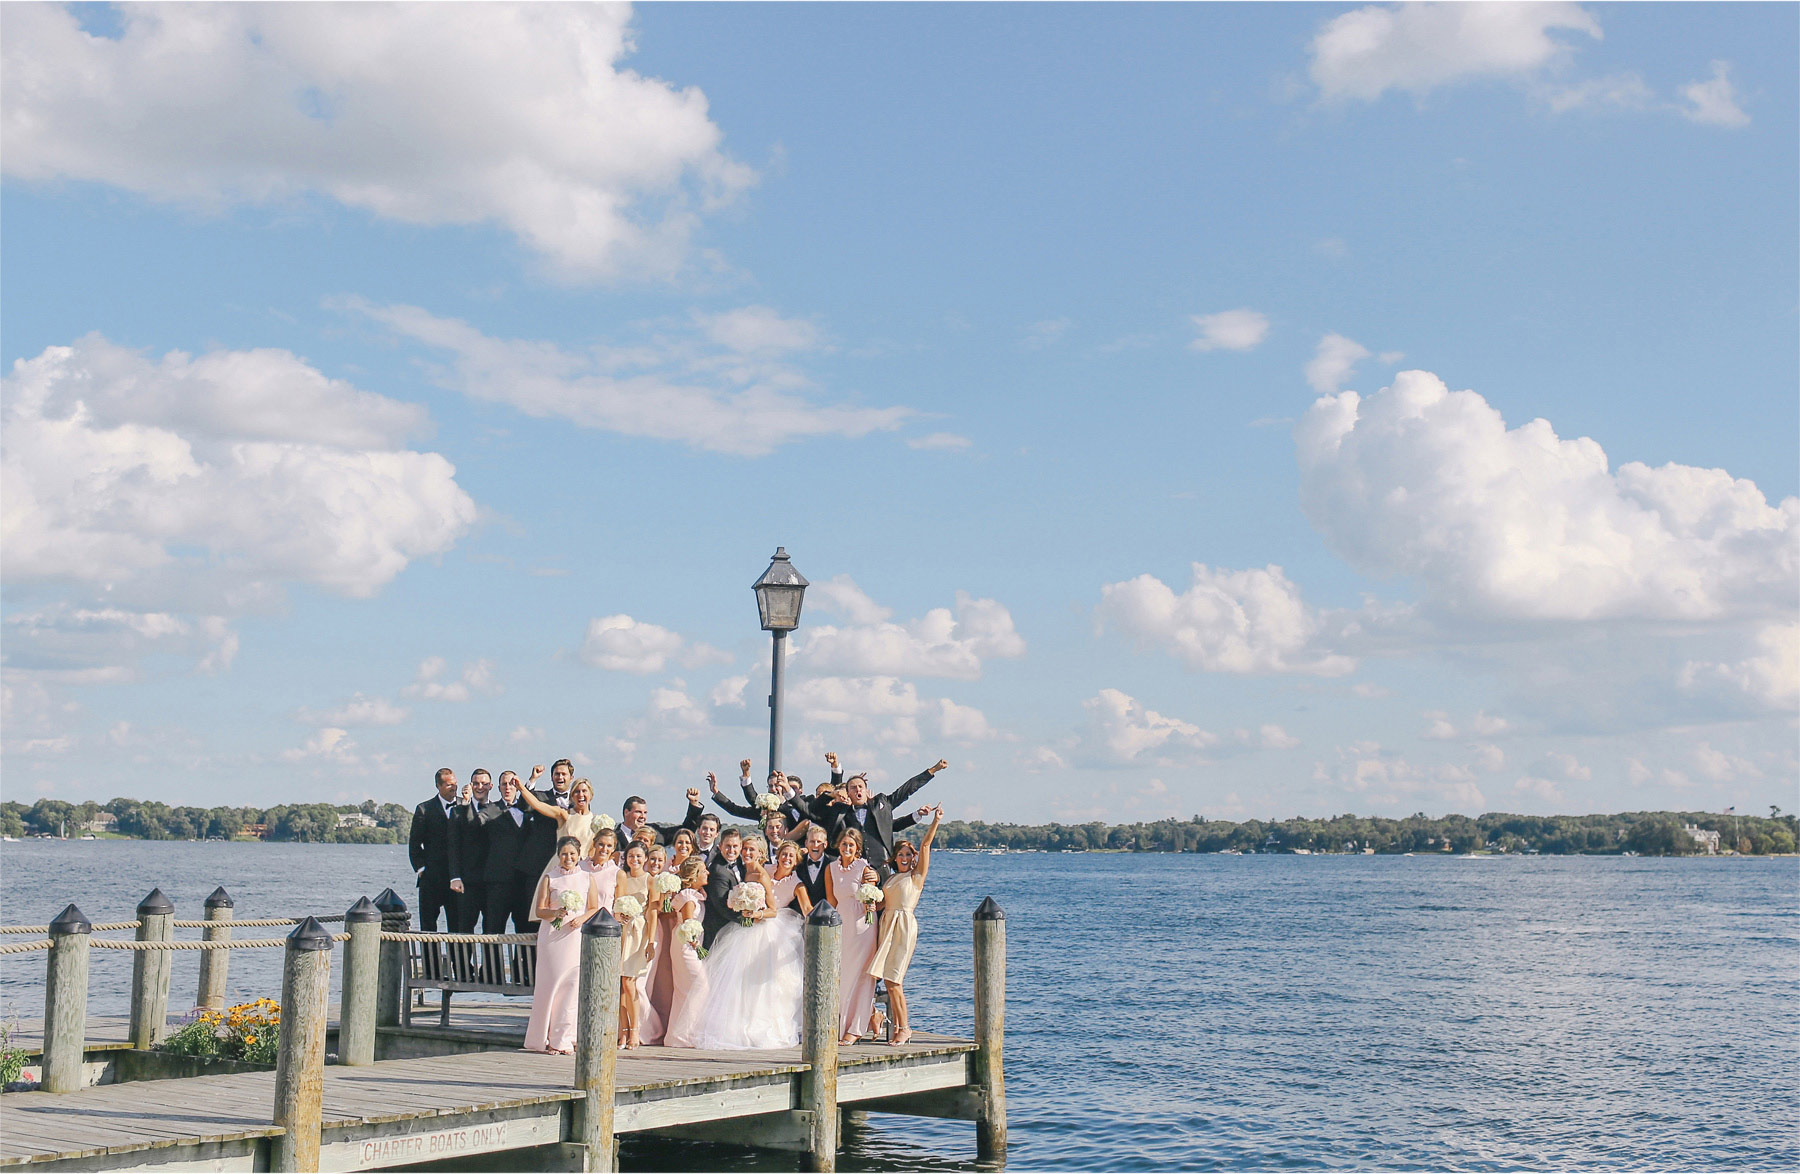 15-Minnetonka-Beach-Minnesota-Wedding-Photographer-by-Andrew-Vick-Photography-Summer-Lake-Bride-Groom-Bridal-Party-Excitement-Docks-Vintage-Emily-and-Jay.jpg